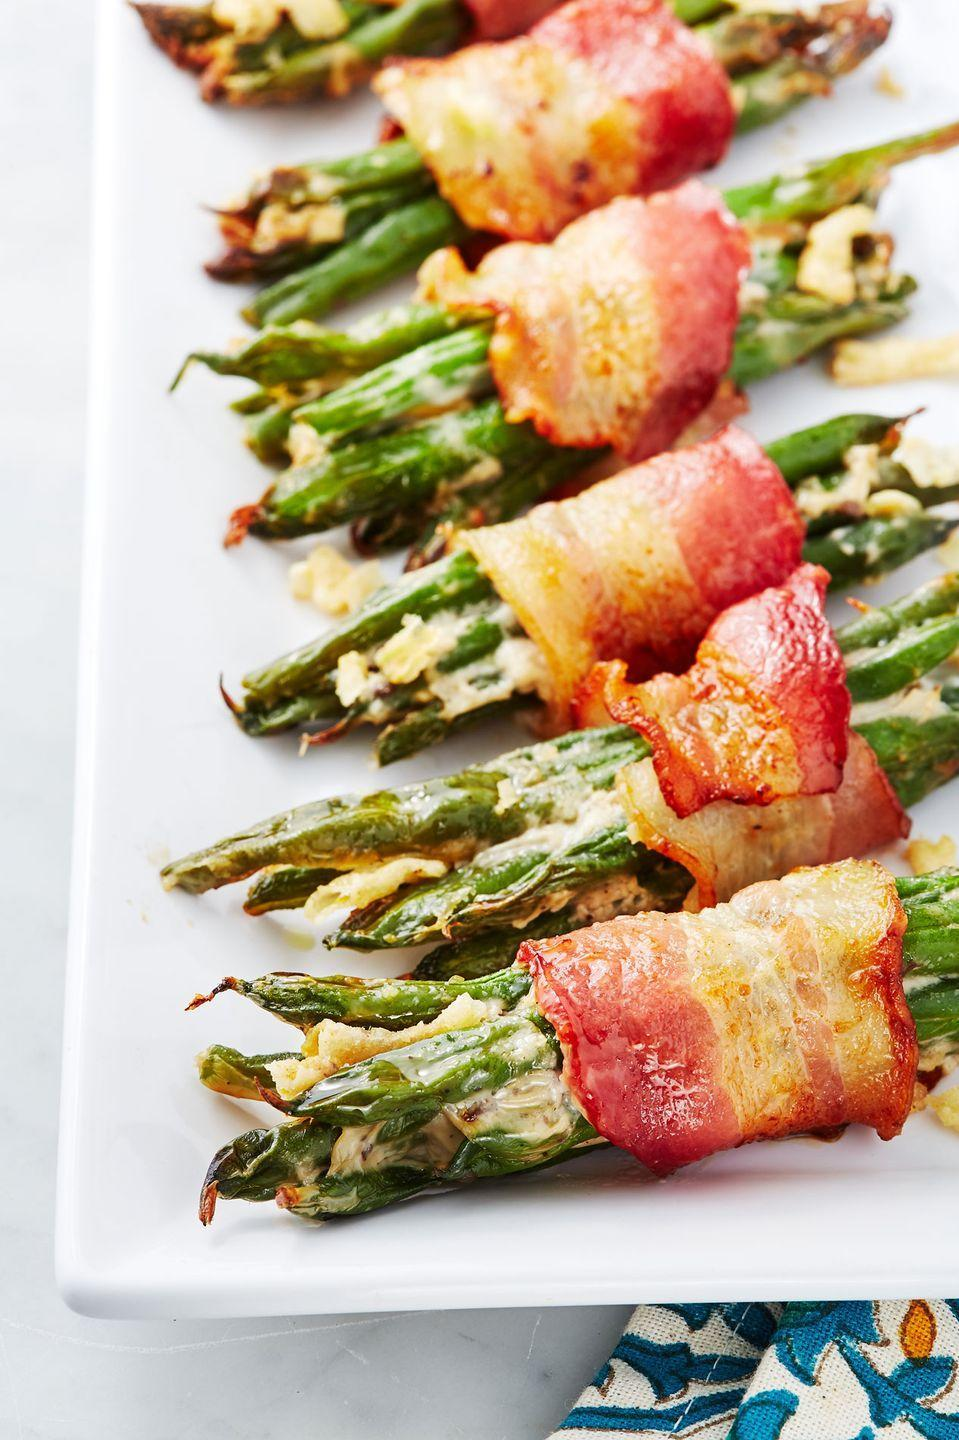 """<p>No need to worry about giving each guest and equal scoop.</p><p>Get the recipe from <a href=""""https://www.delish.com/cooking/recipe-ideas/recipes/a50049/green-bean-casserole-bundles-recipe/"""" rel=""""nofollow noopener"""" target=""""_blank"""" data-ylk=""""slk:Delish"""" class=""""link rapid-noclick-resp"""">Delish</a>.</p>"""